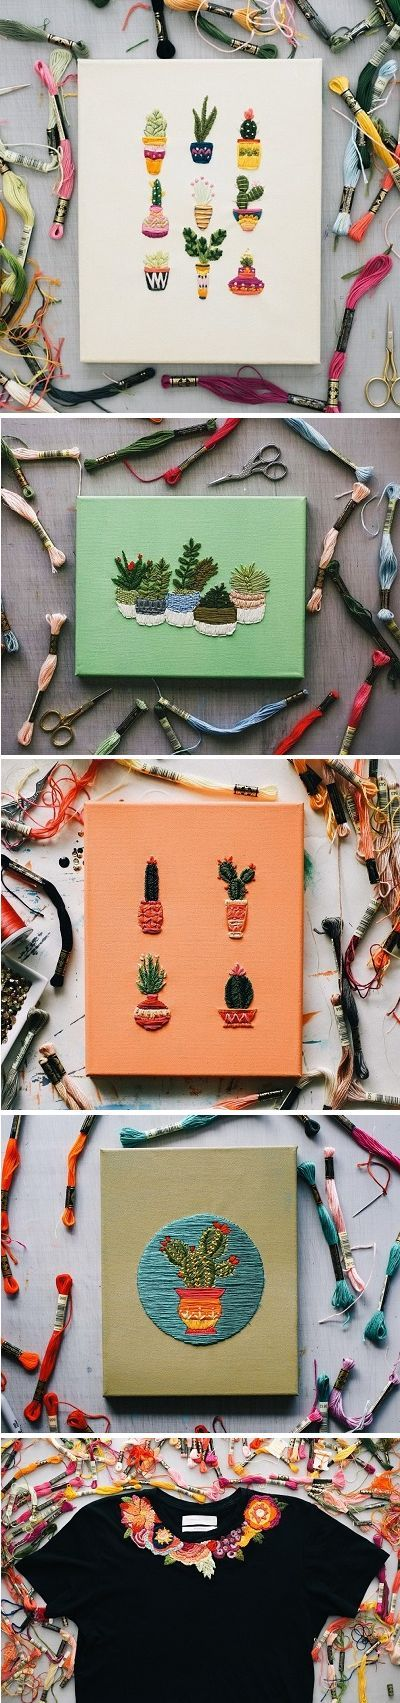 embroidery - succulents